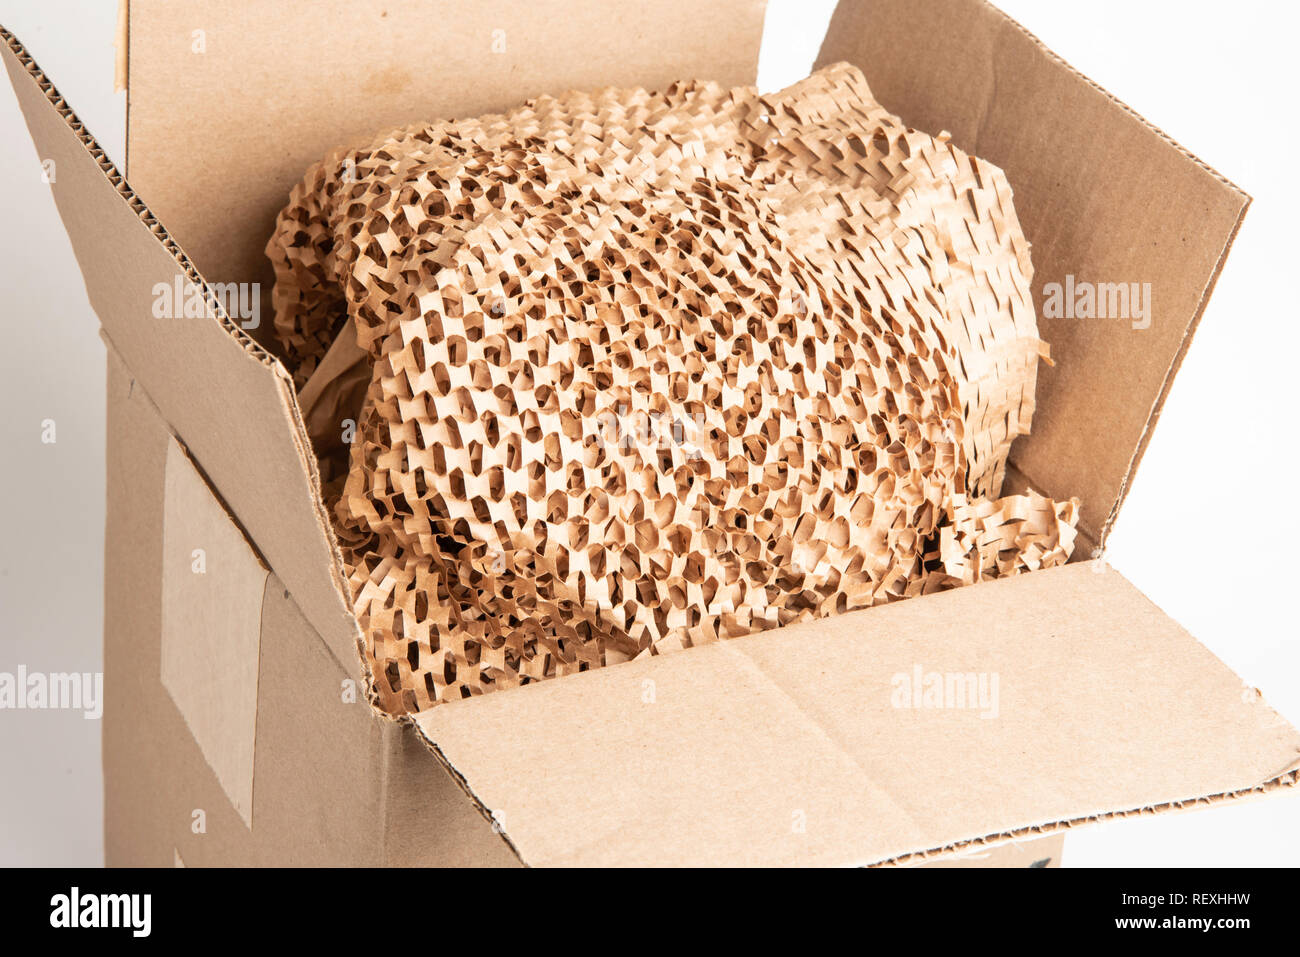 A bunched recyclable perforated brown paper filler on top of an opened box package. - Stock Image